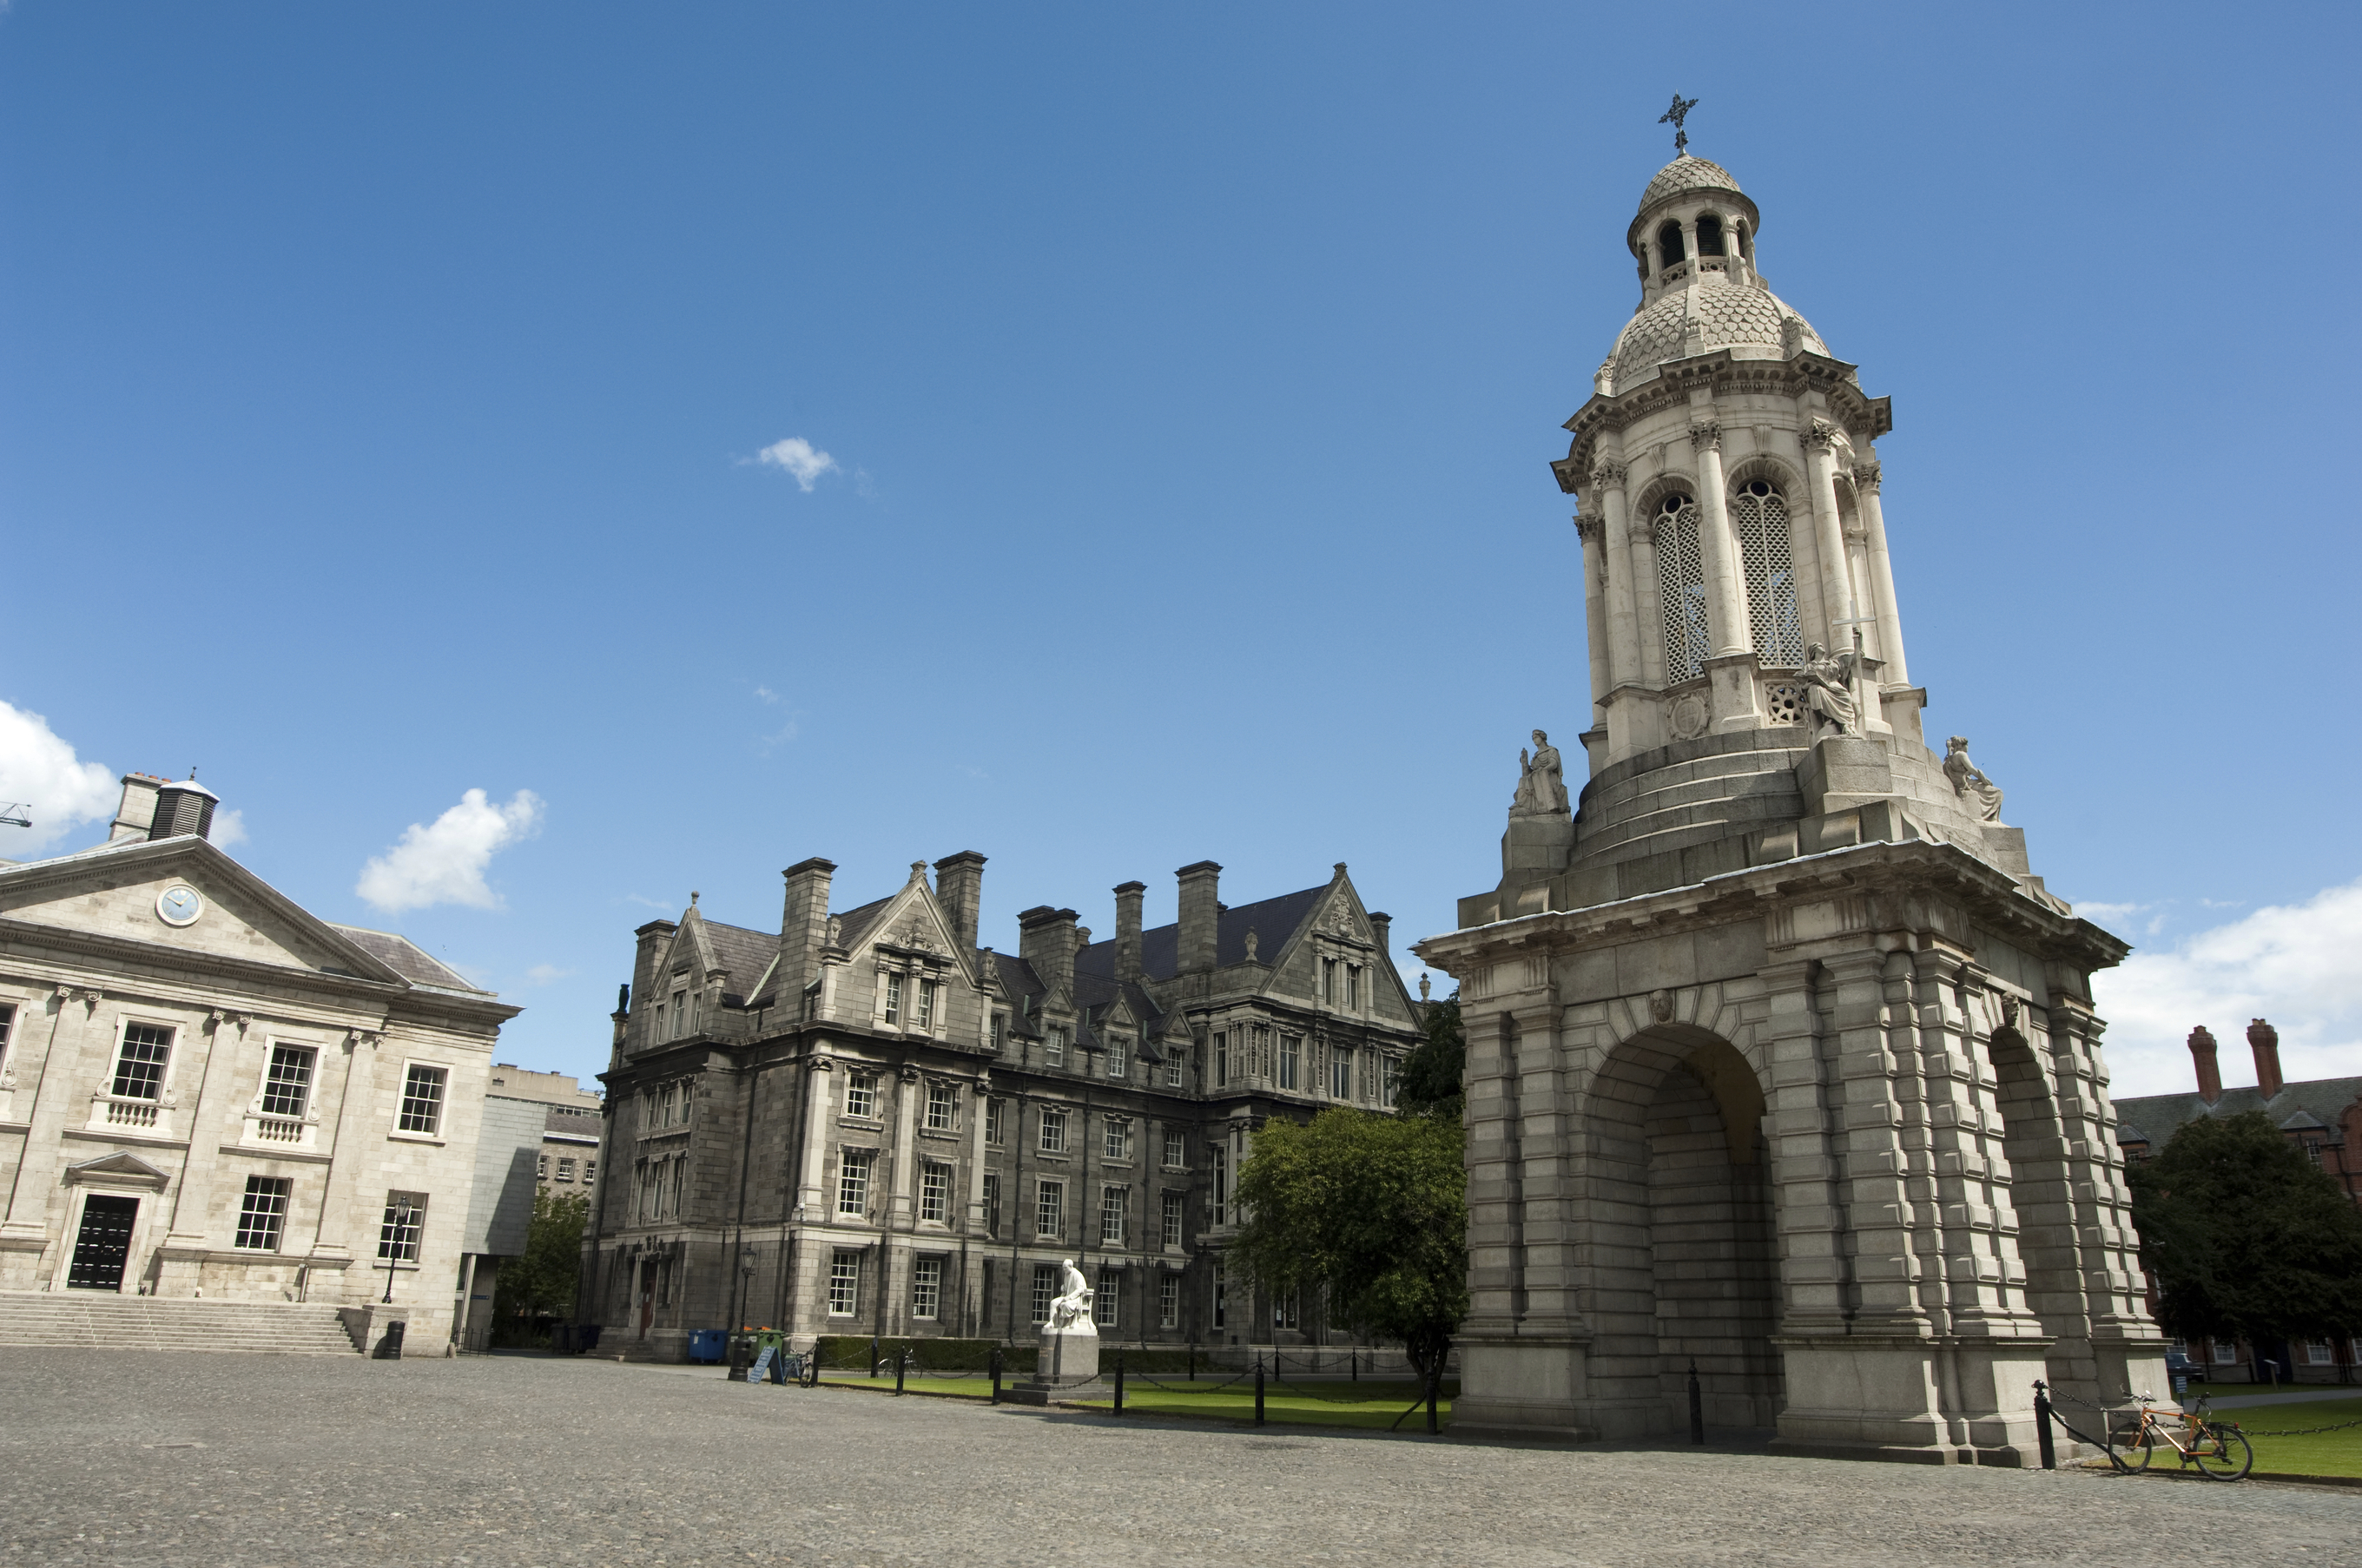 Students harshly critical of Trinity College's axing of term